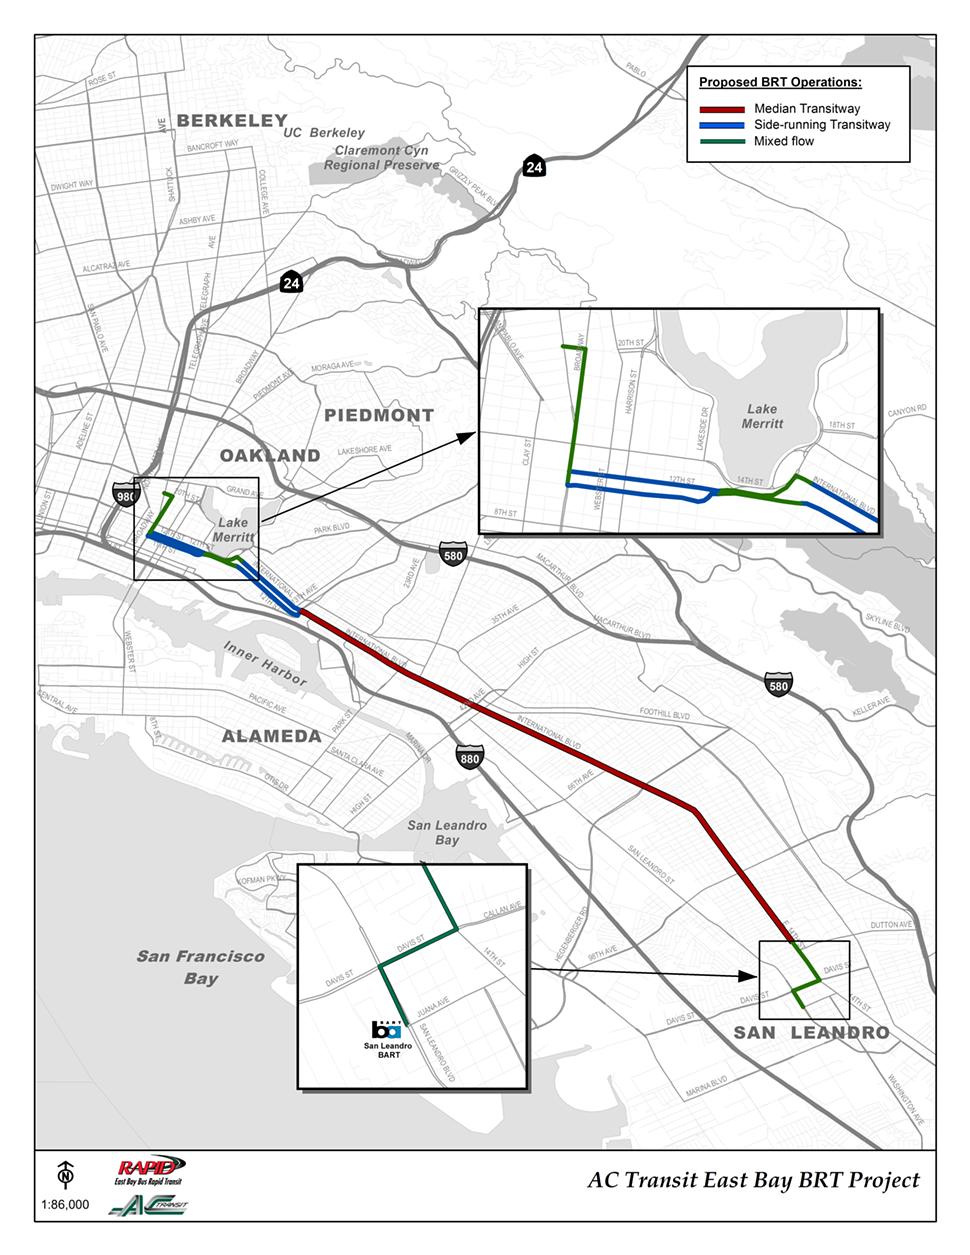 Map of proposed BRT operations.